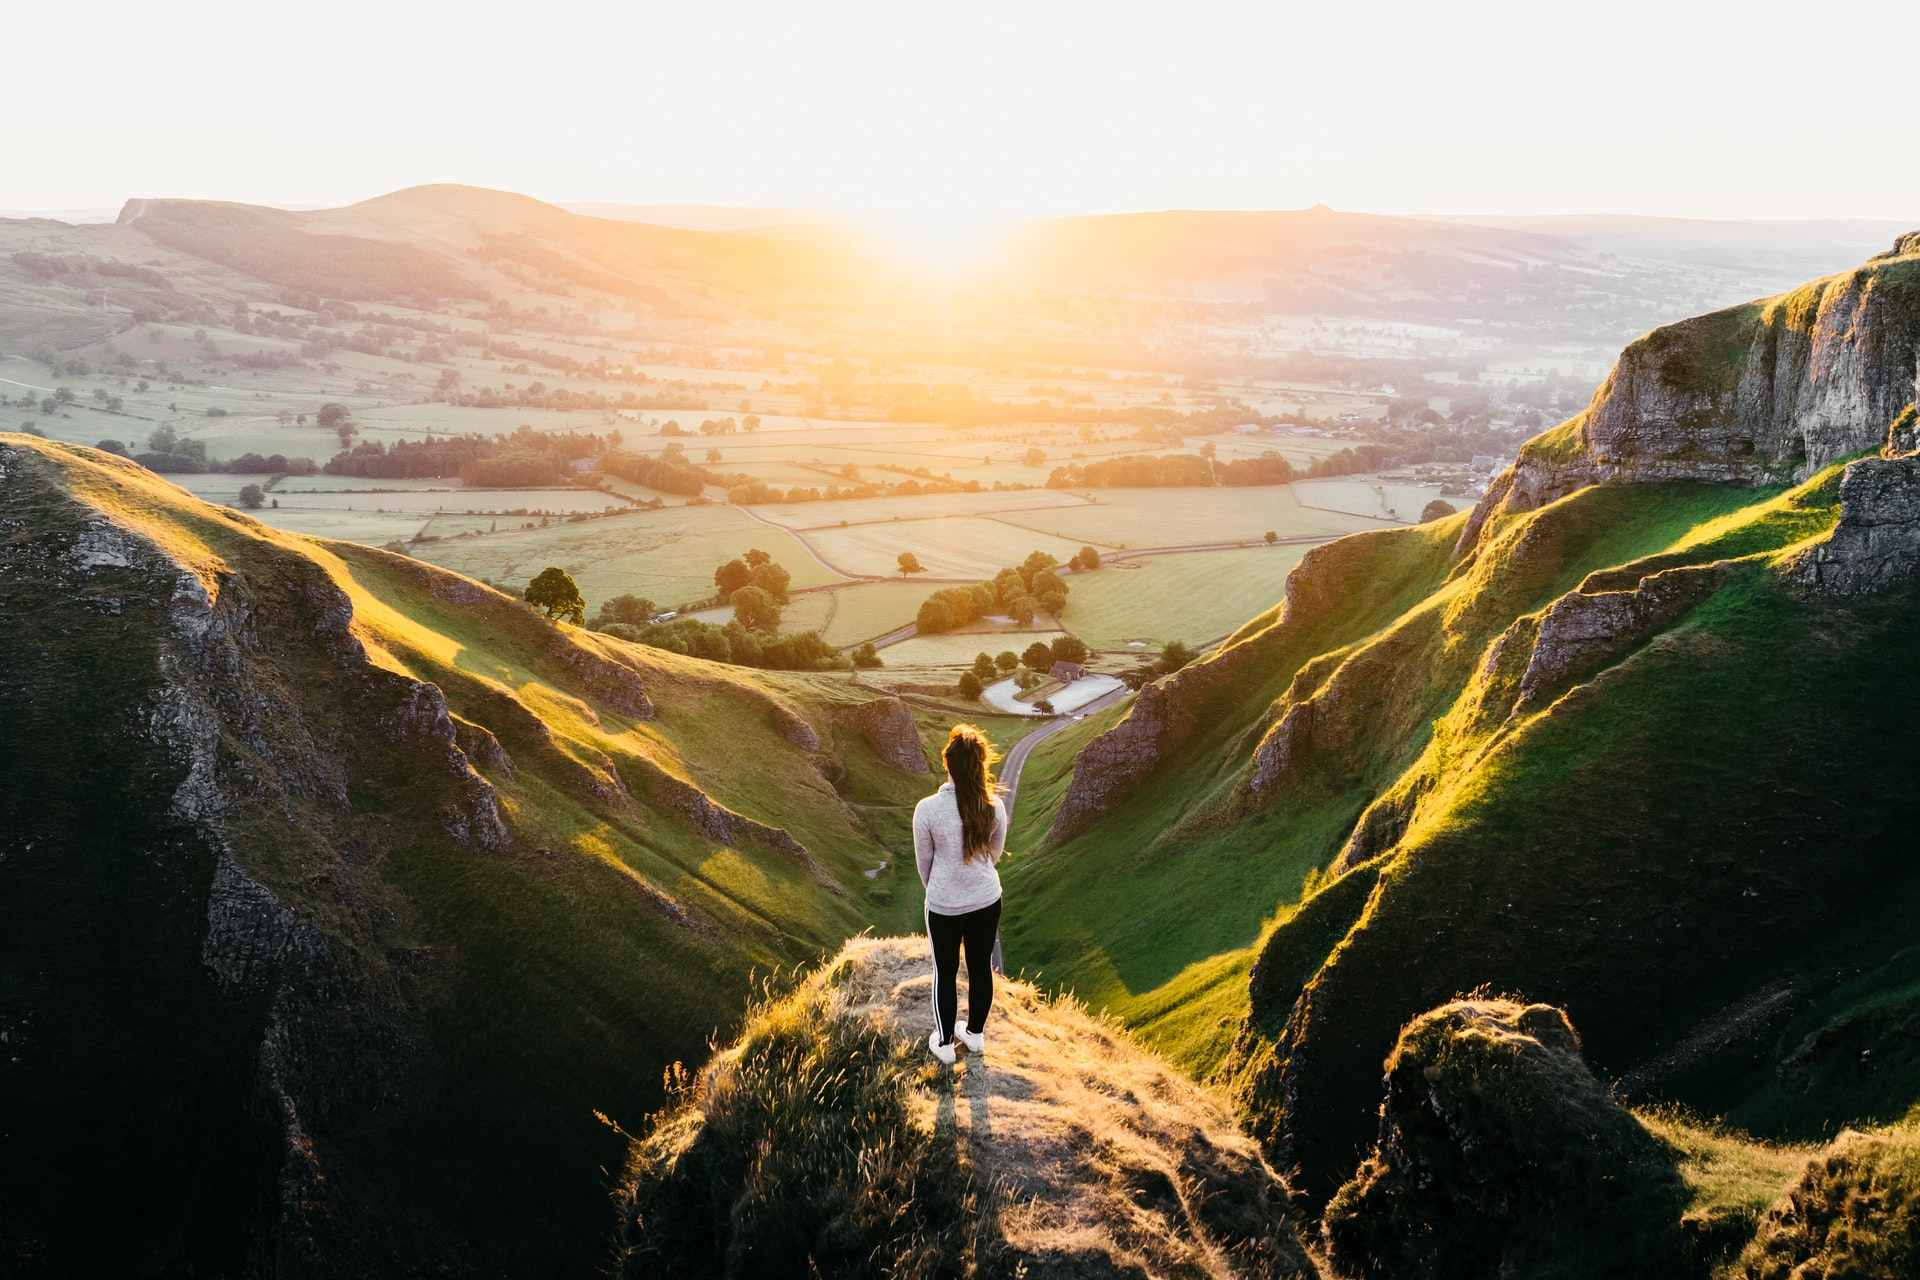 woman-standing-on-rock-overlooking-winnats-pass-winding-road-and-countryside-at-sunset-best-peak-district-walks